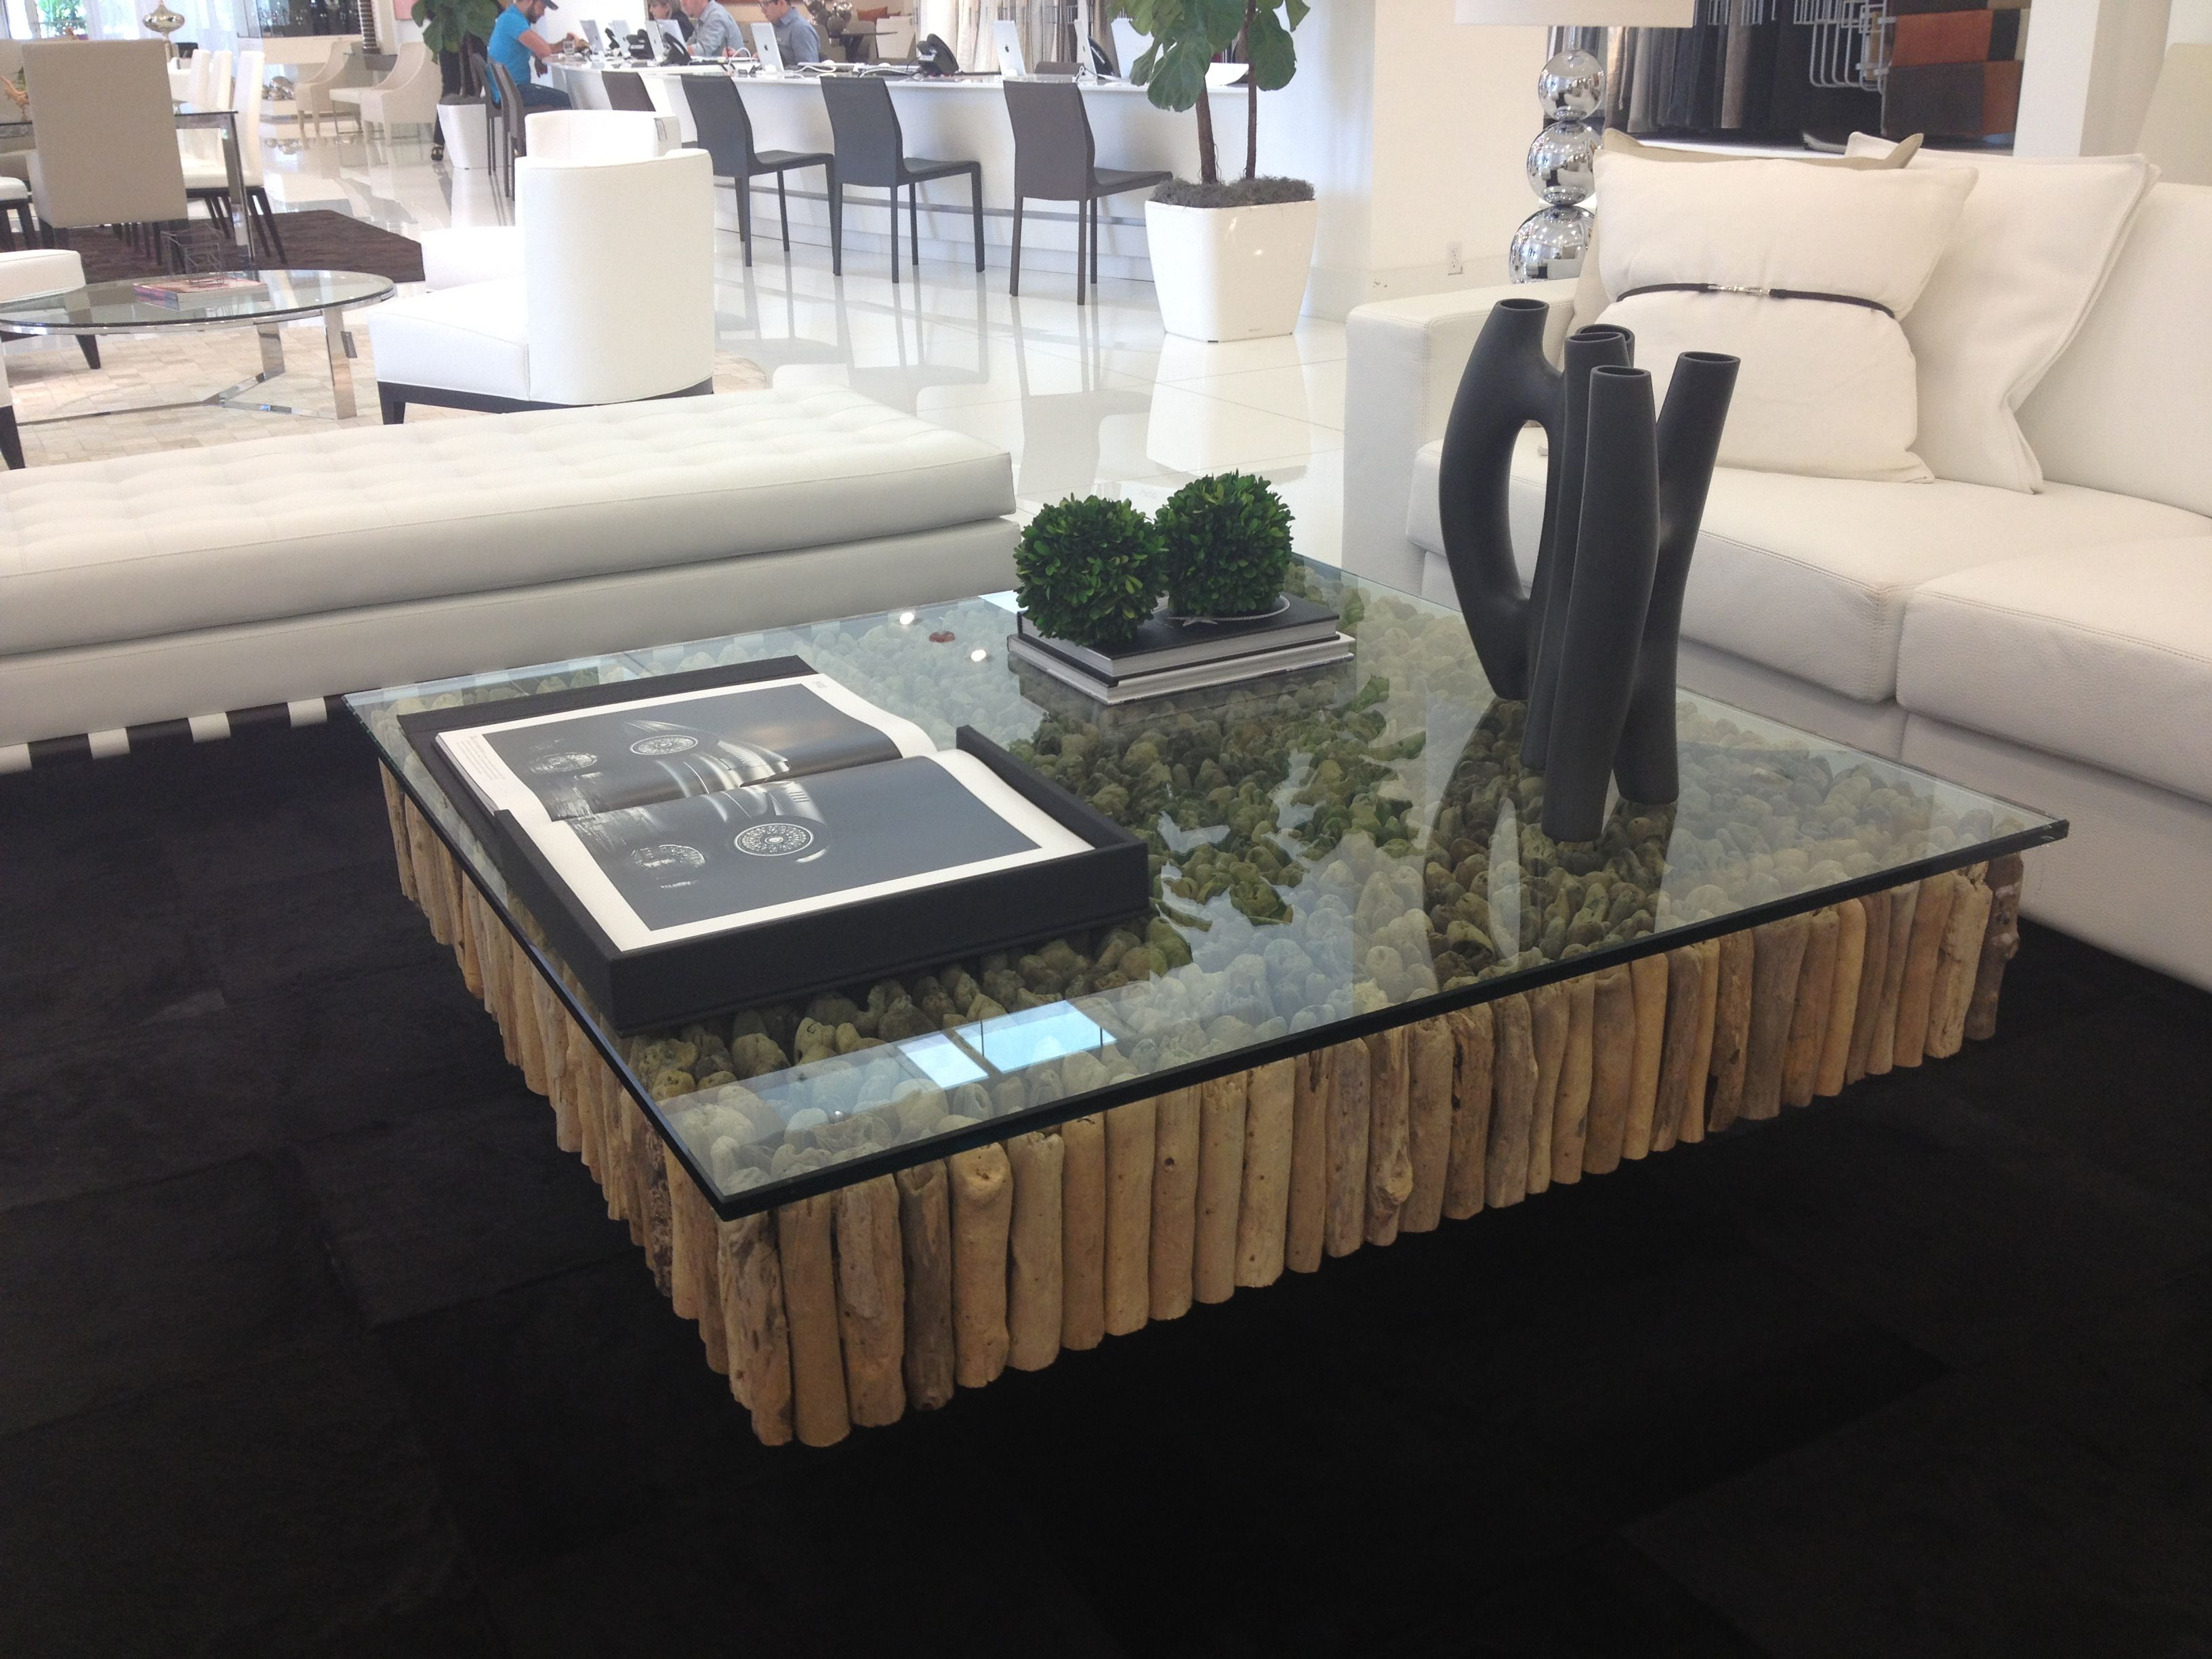 Love The Artefacto Wood And Glass Coffee Table Coffee Table Office Remodel Glass Coffee Table [ 2448 x 3264 Pixel ]